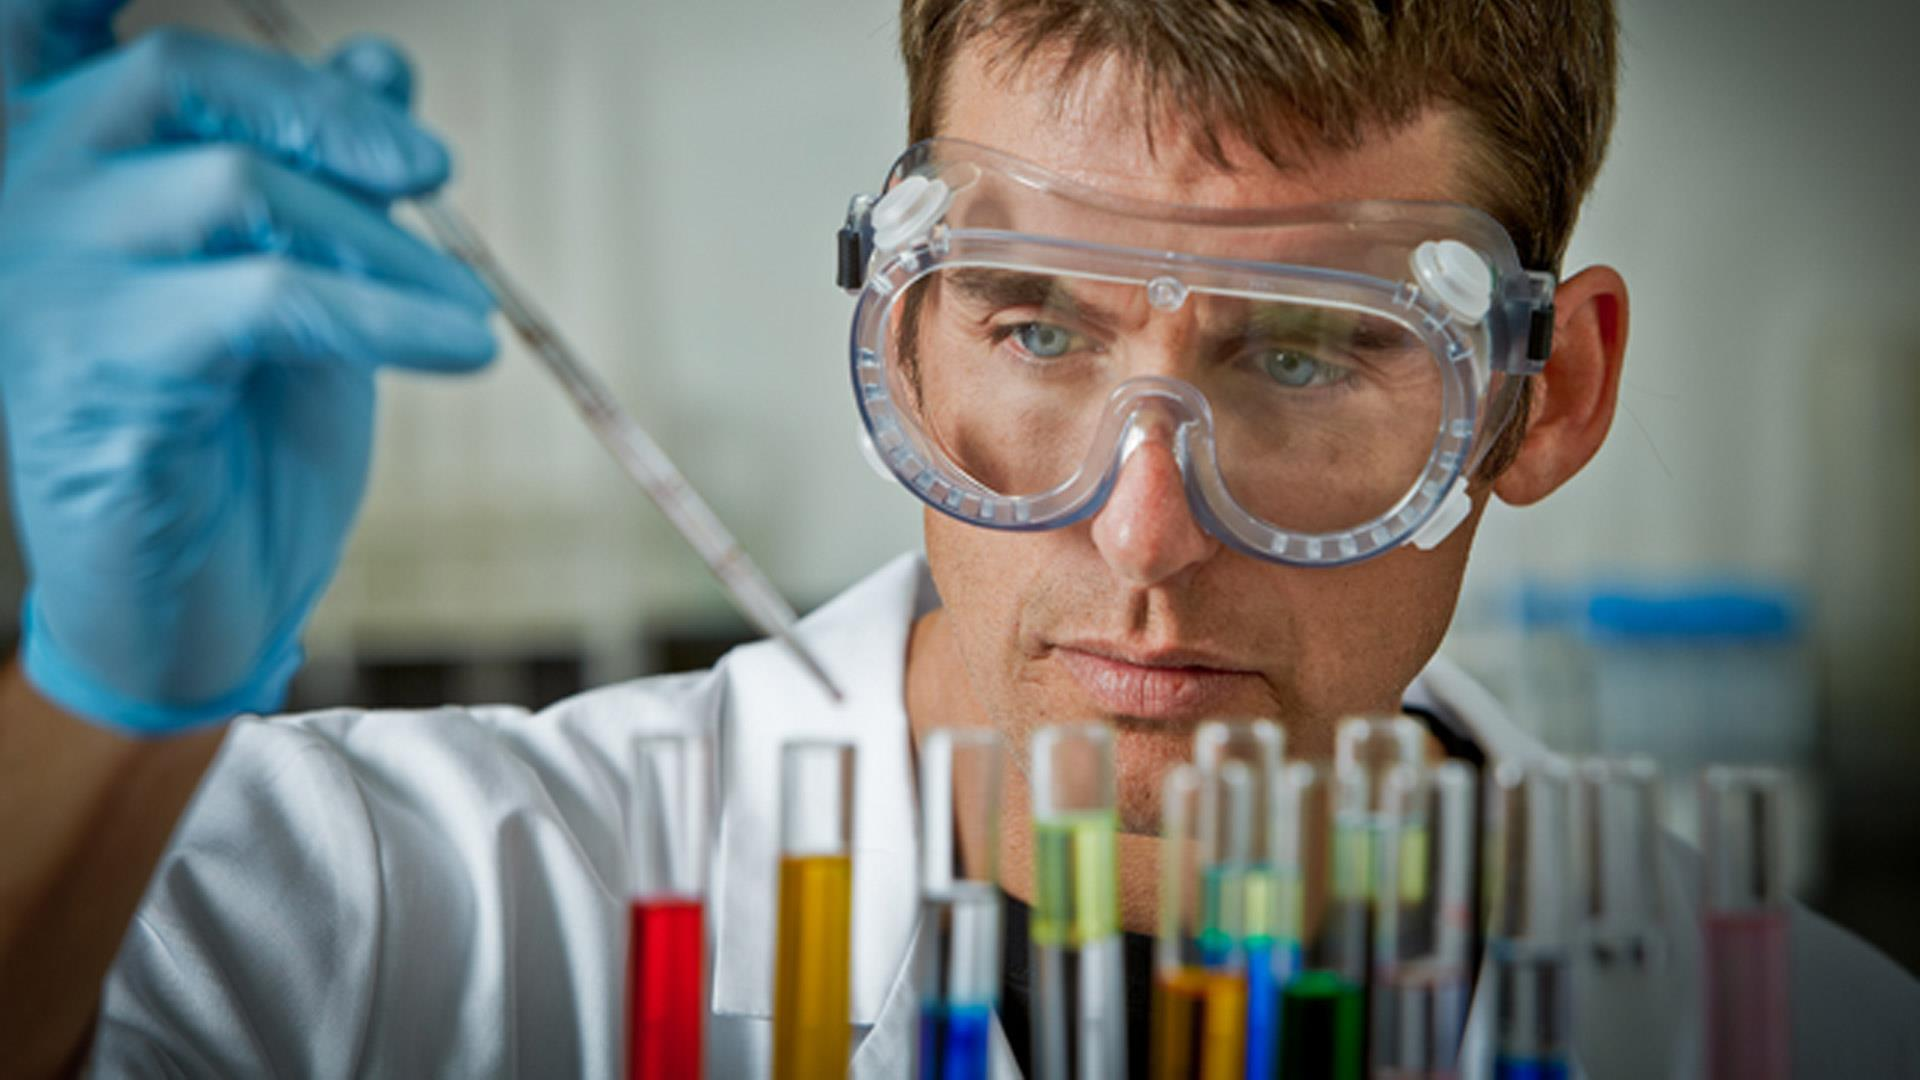 A technician examines a series of chemicals for the PETROS Fluid System